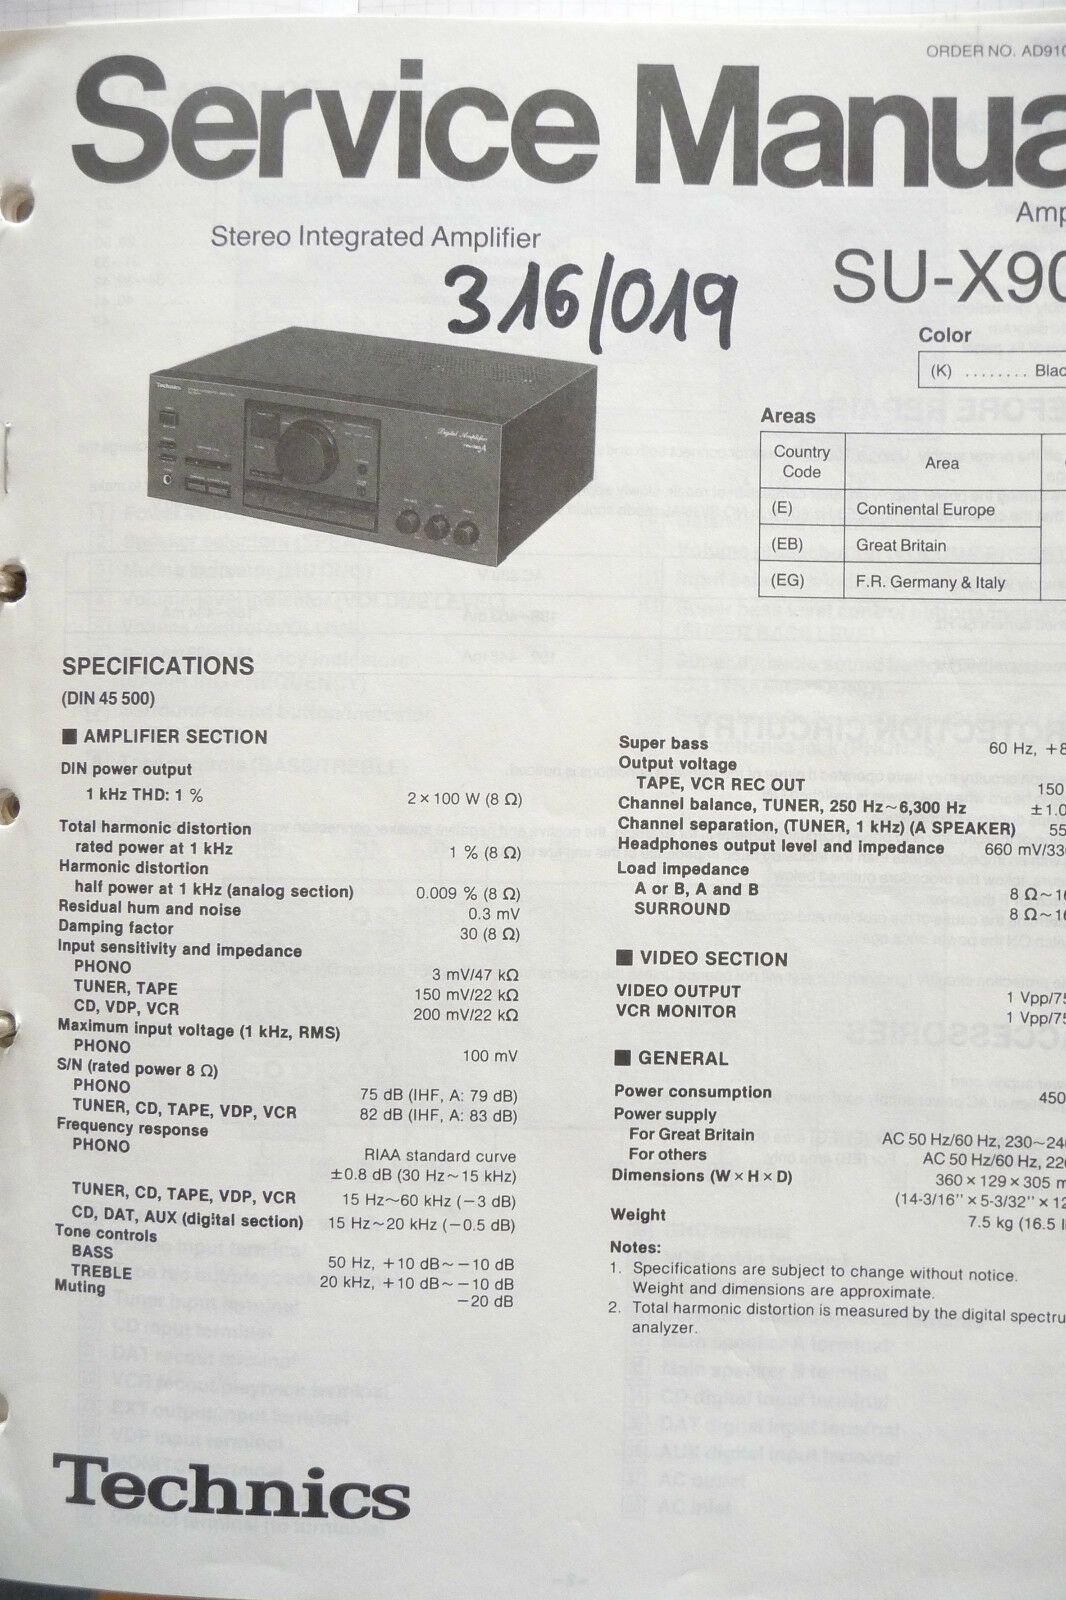 Service Manual Technics SU-X902 Amplifier,ORIGINAL 1 of 1Only 1 available  ...